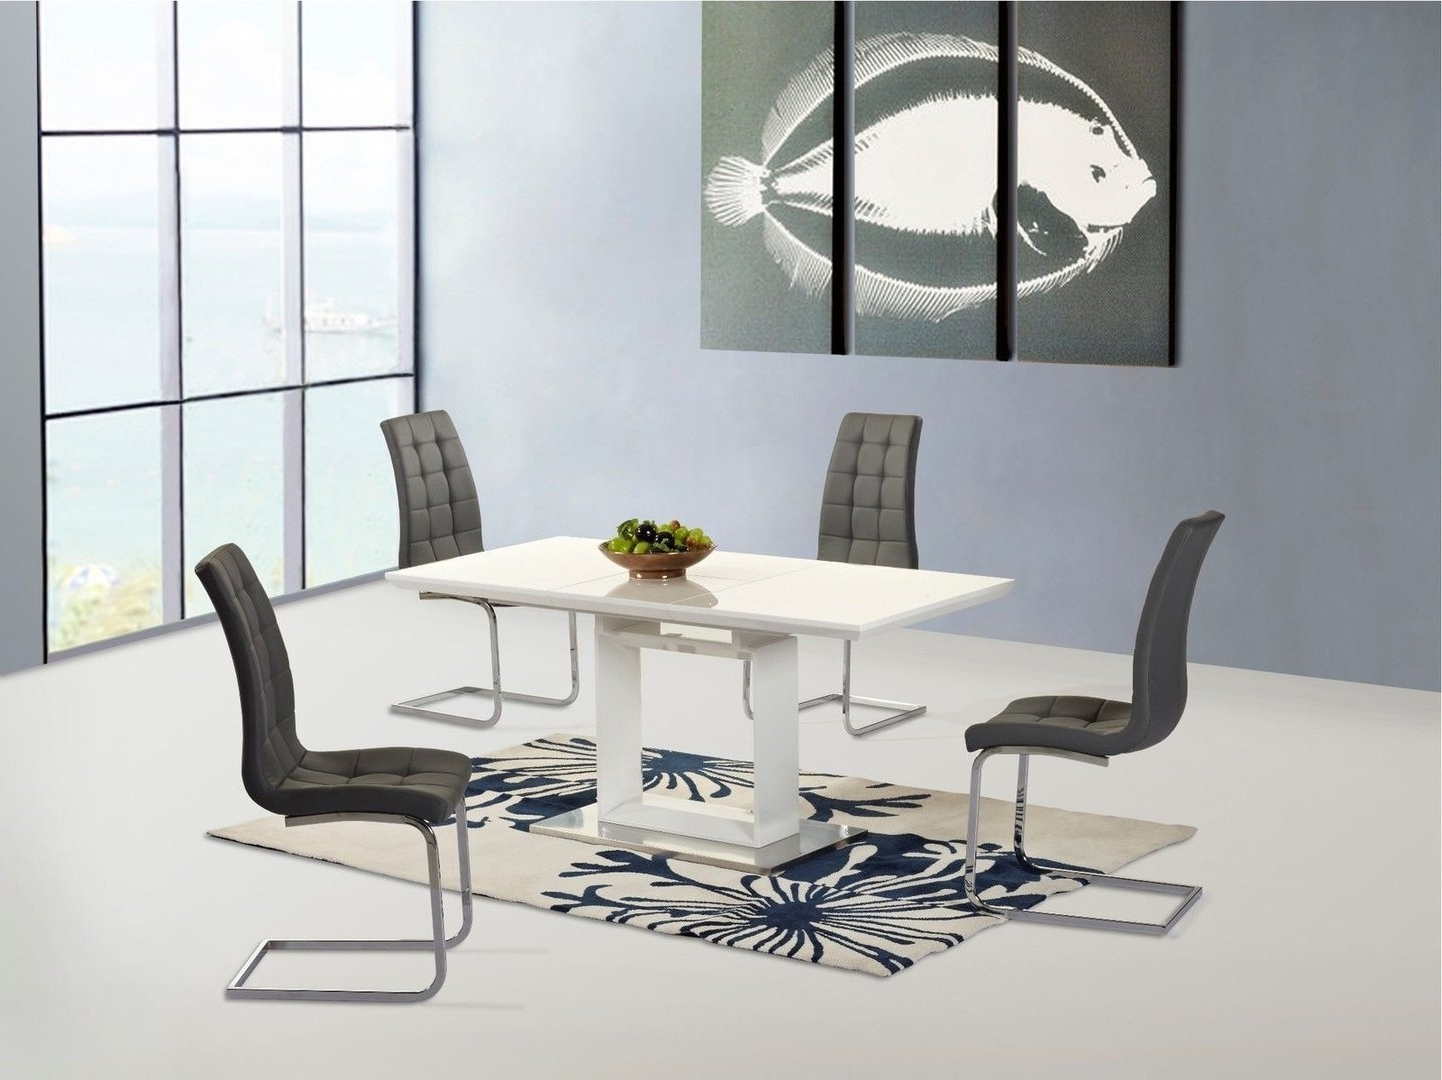 New White High Gloss Extending Dining Table And 6 Grey Chairs For Widely Used White Gloss Extending Dining Tables (View 21 of 25)